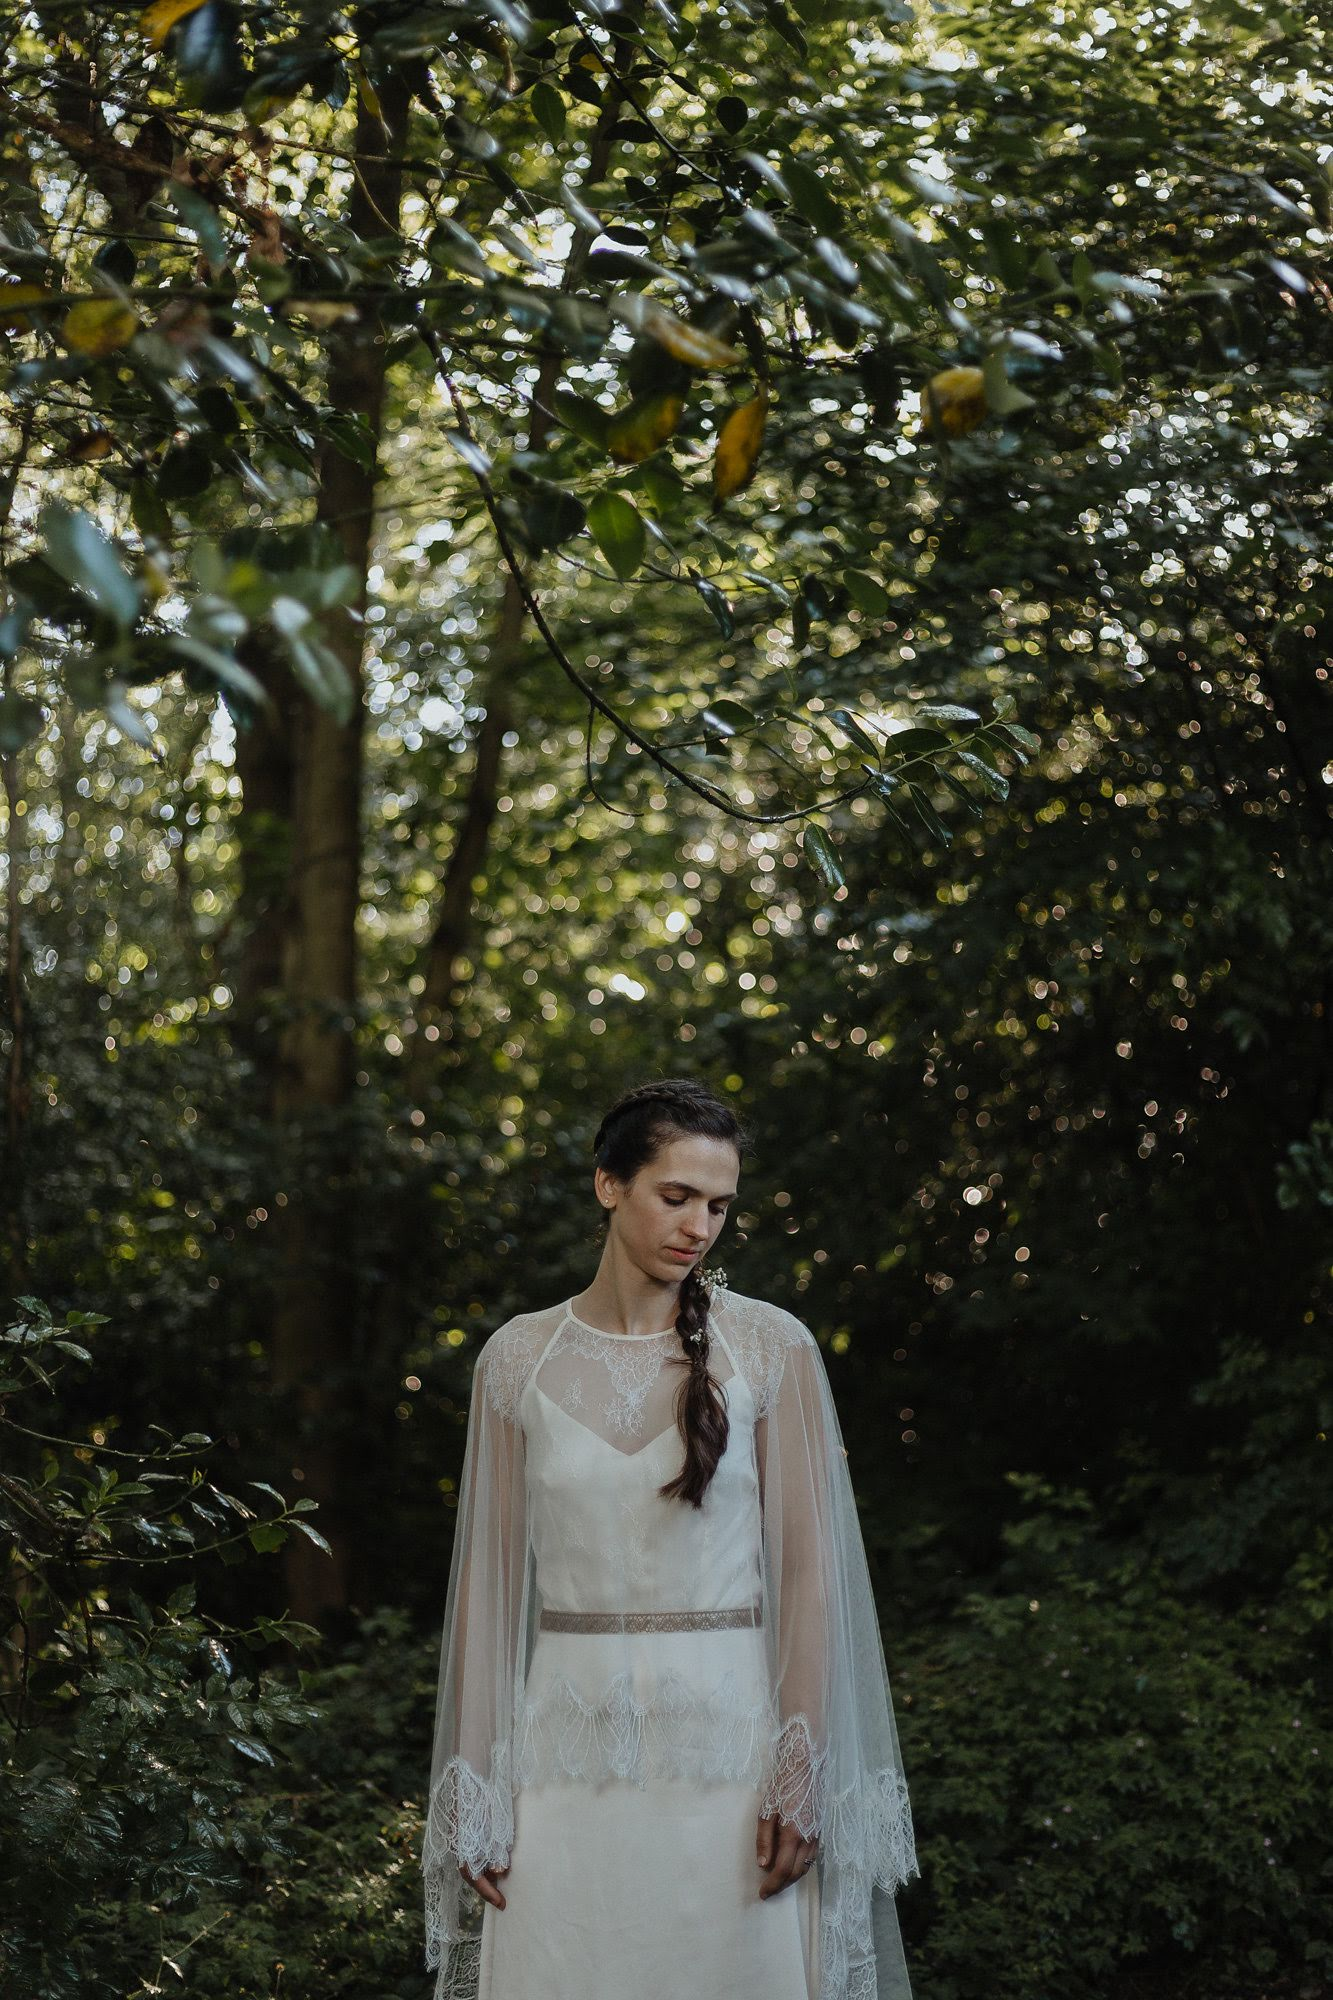 Rowanne-Laid-back-Woodland-Wedding-Sheffield-Clematis-Lace-Silk-Bohemian-Wedding-Gown-Kate-Beaumont-43.jpg